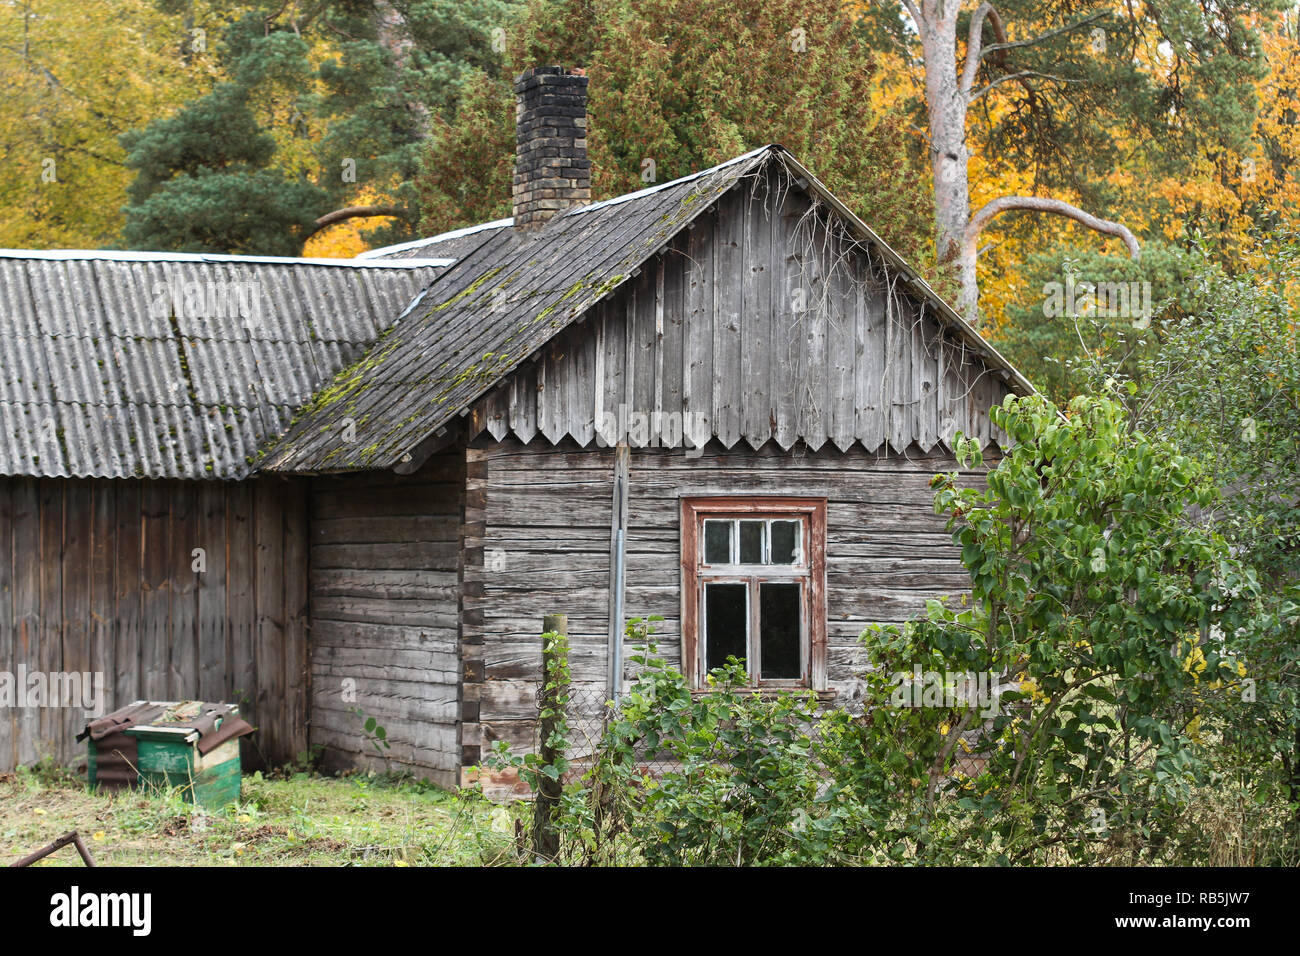 Beautiful Old Wood House In A Small Countryside Forest Stock Photo